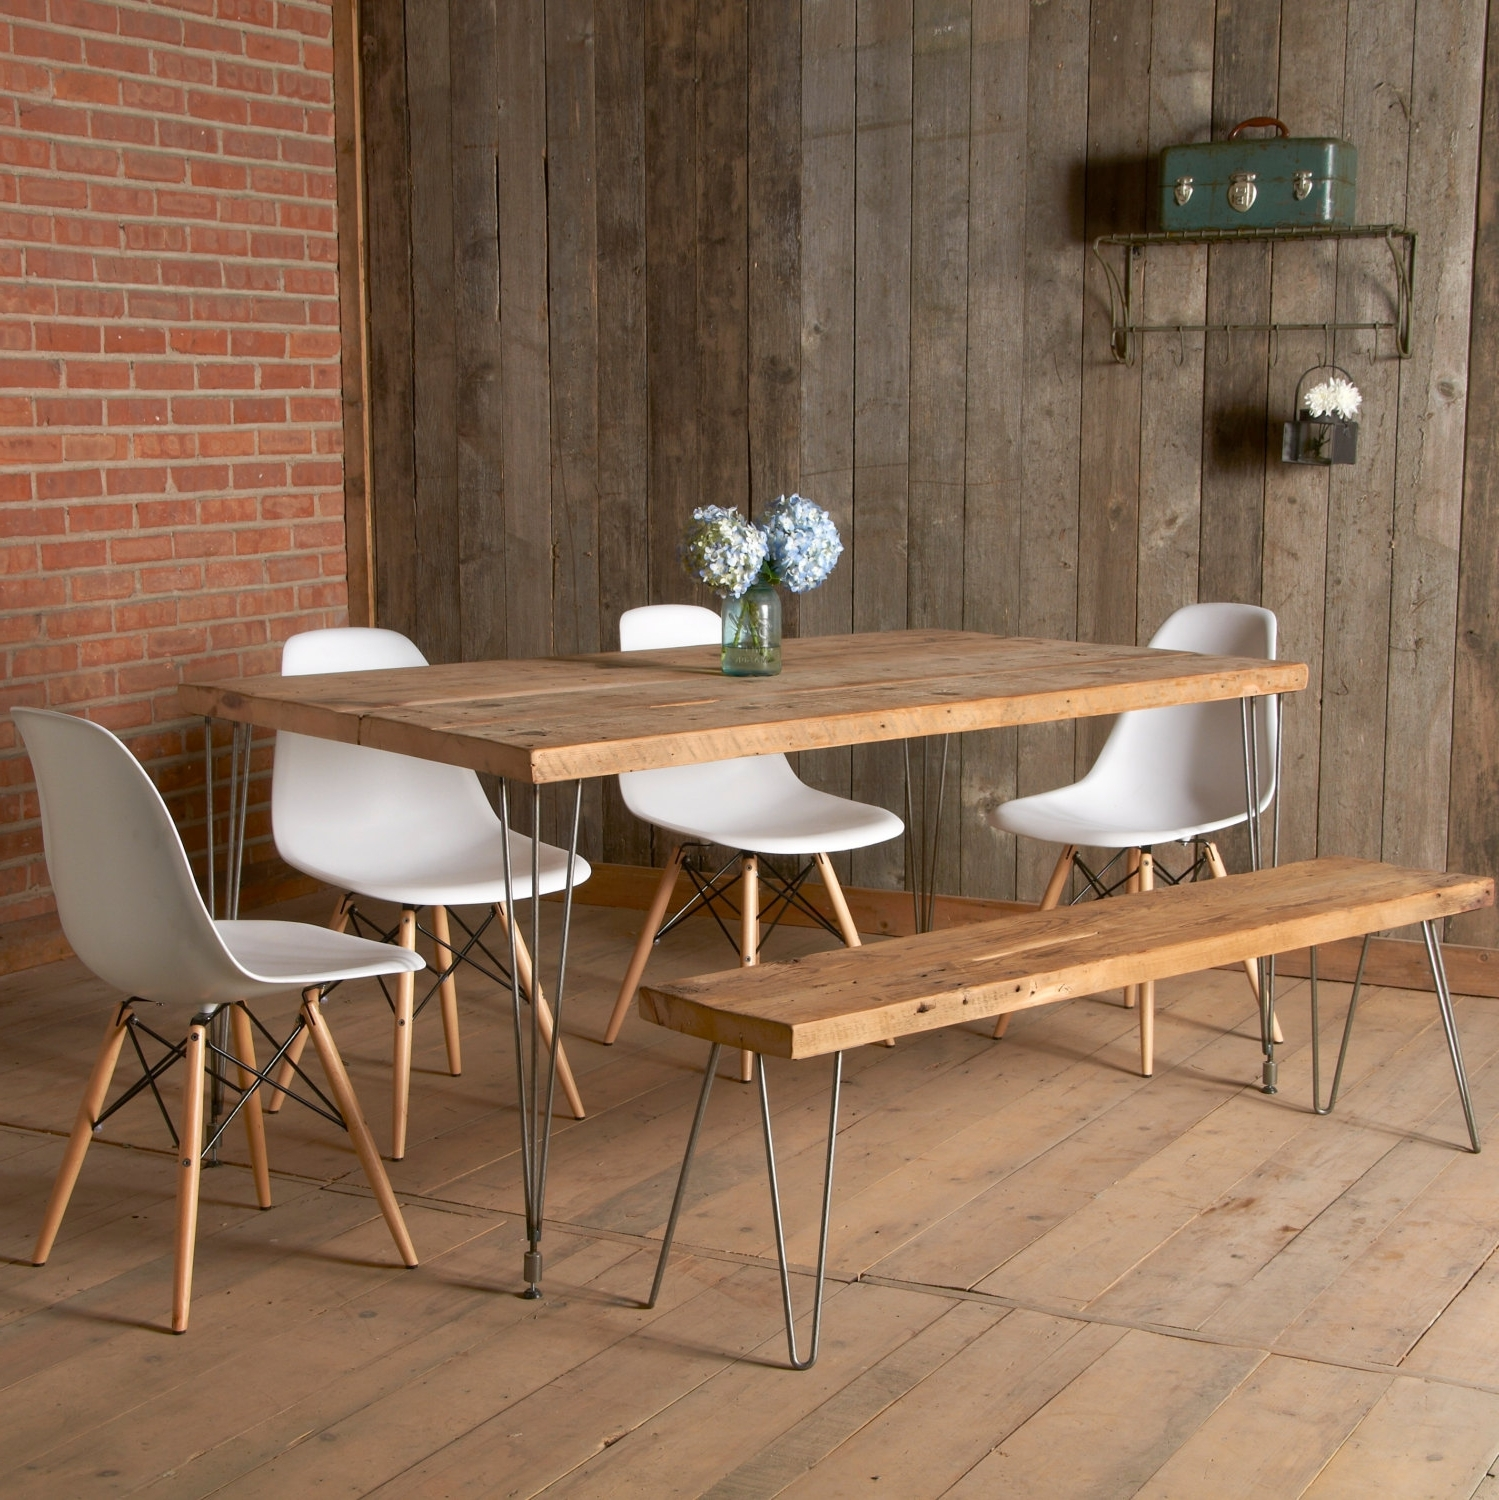 Dining Room Dining Room Table With Bench Seats Table Sets On Best throughout Most Up-to-Date Jaxon 6 Piece Rectangle Dining Sets With Bench & Wood Chairs